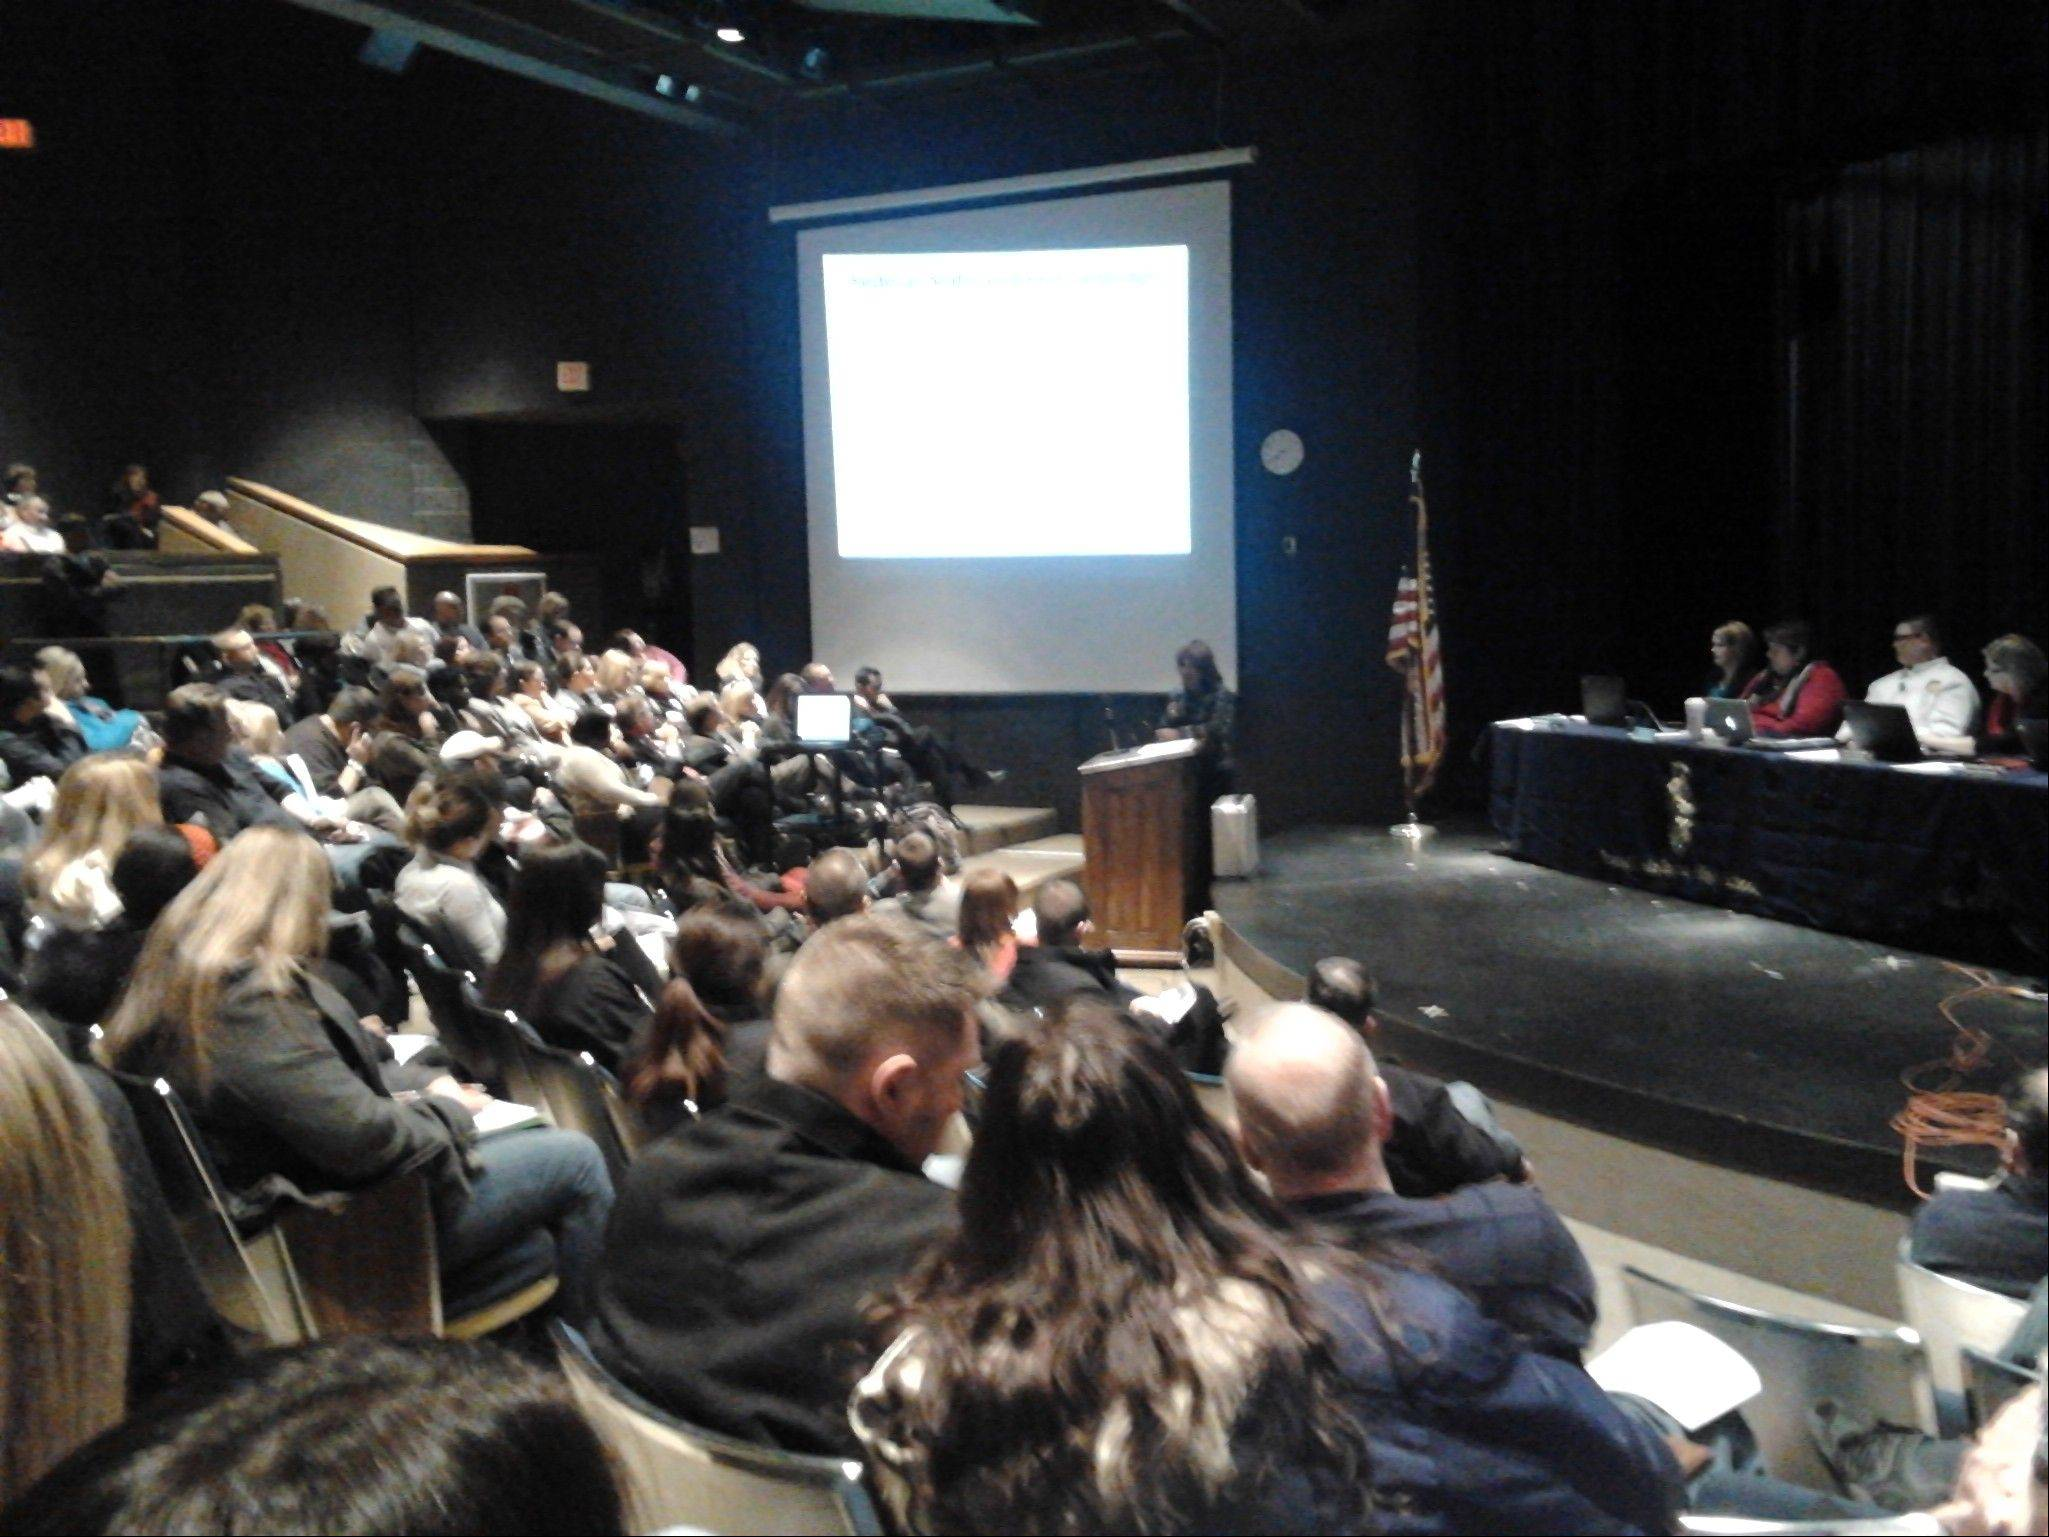 About 250 parents, teachers and others heard Round Lake Area Unit District 116 Superintendent Constance Collins give a presentation on possible restructuring plans earlier this month. She said the way education is delivered to students must change because of consistently poor academic performance.